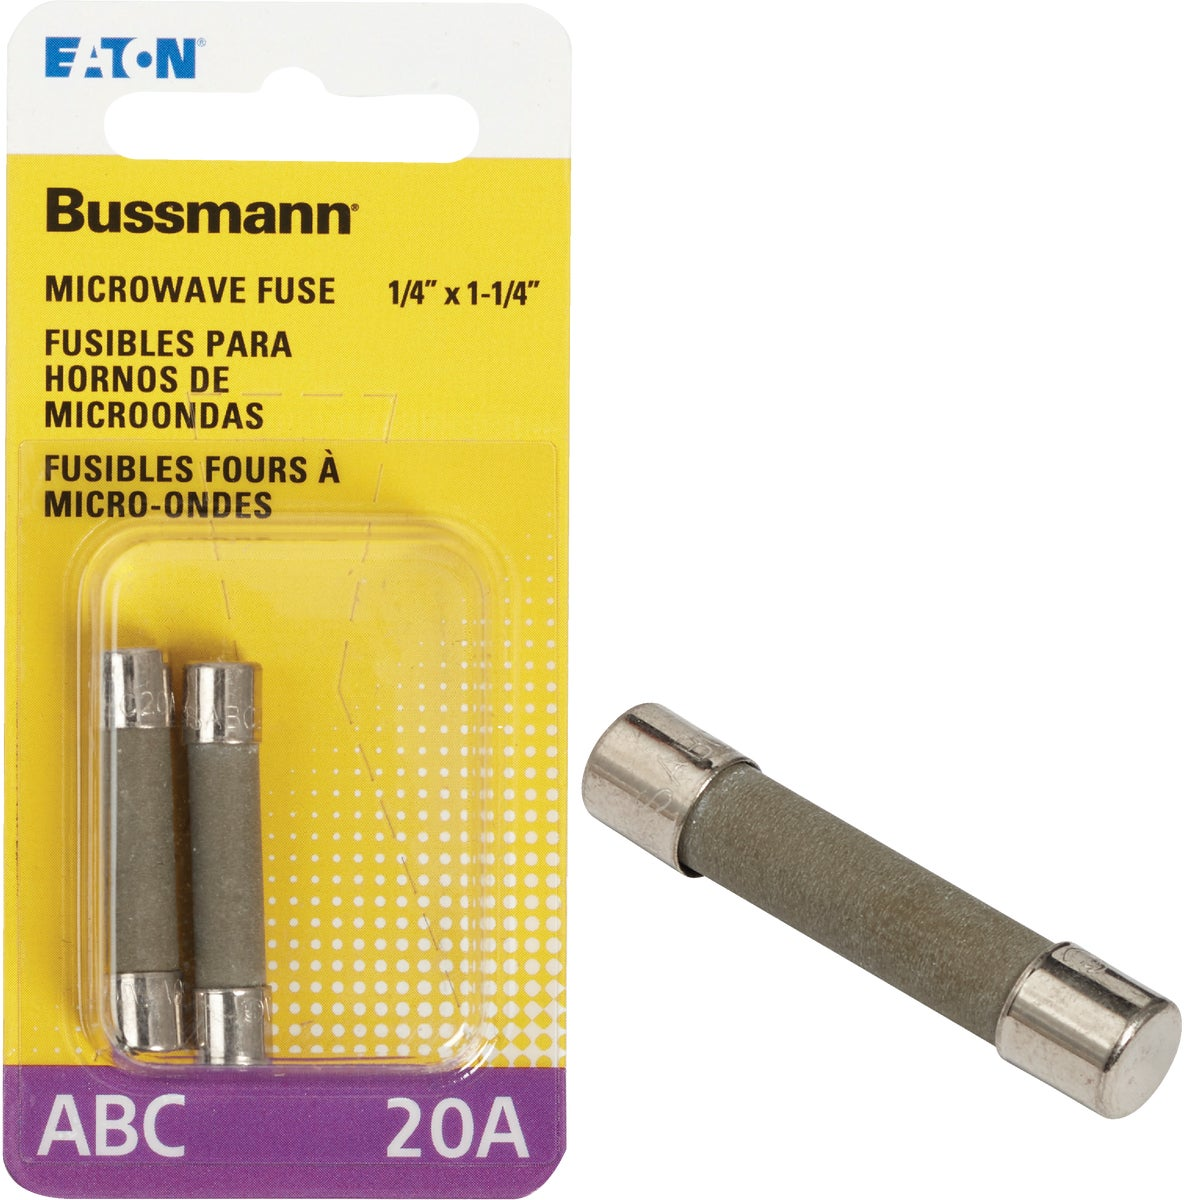 20A FAST ACTING FUSE